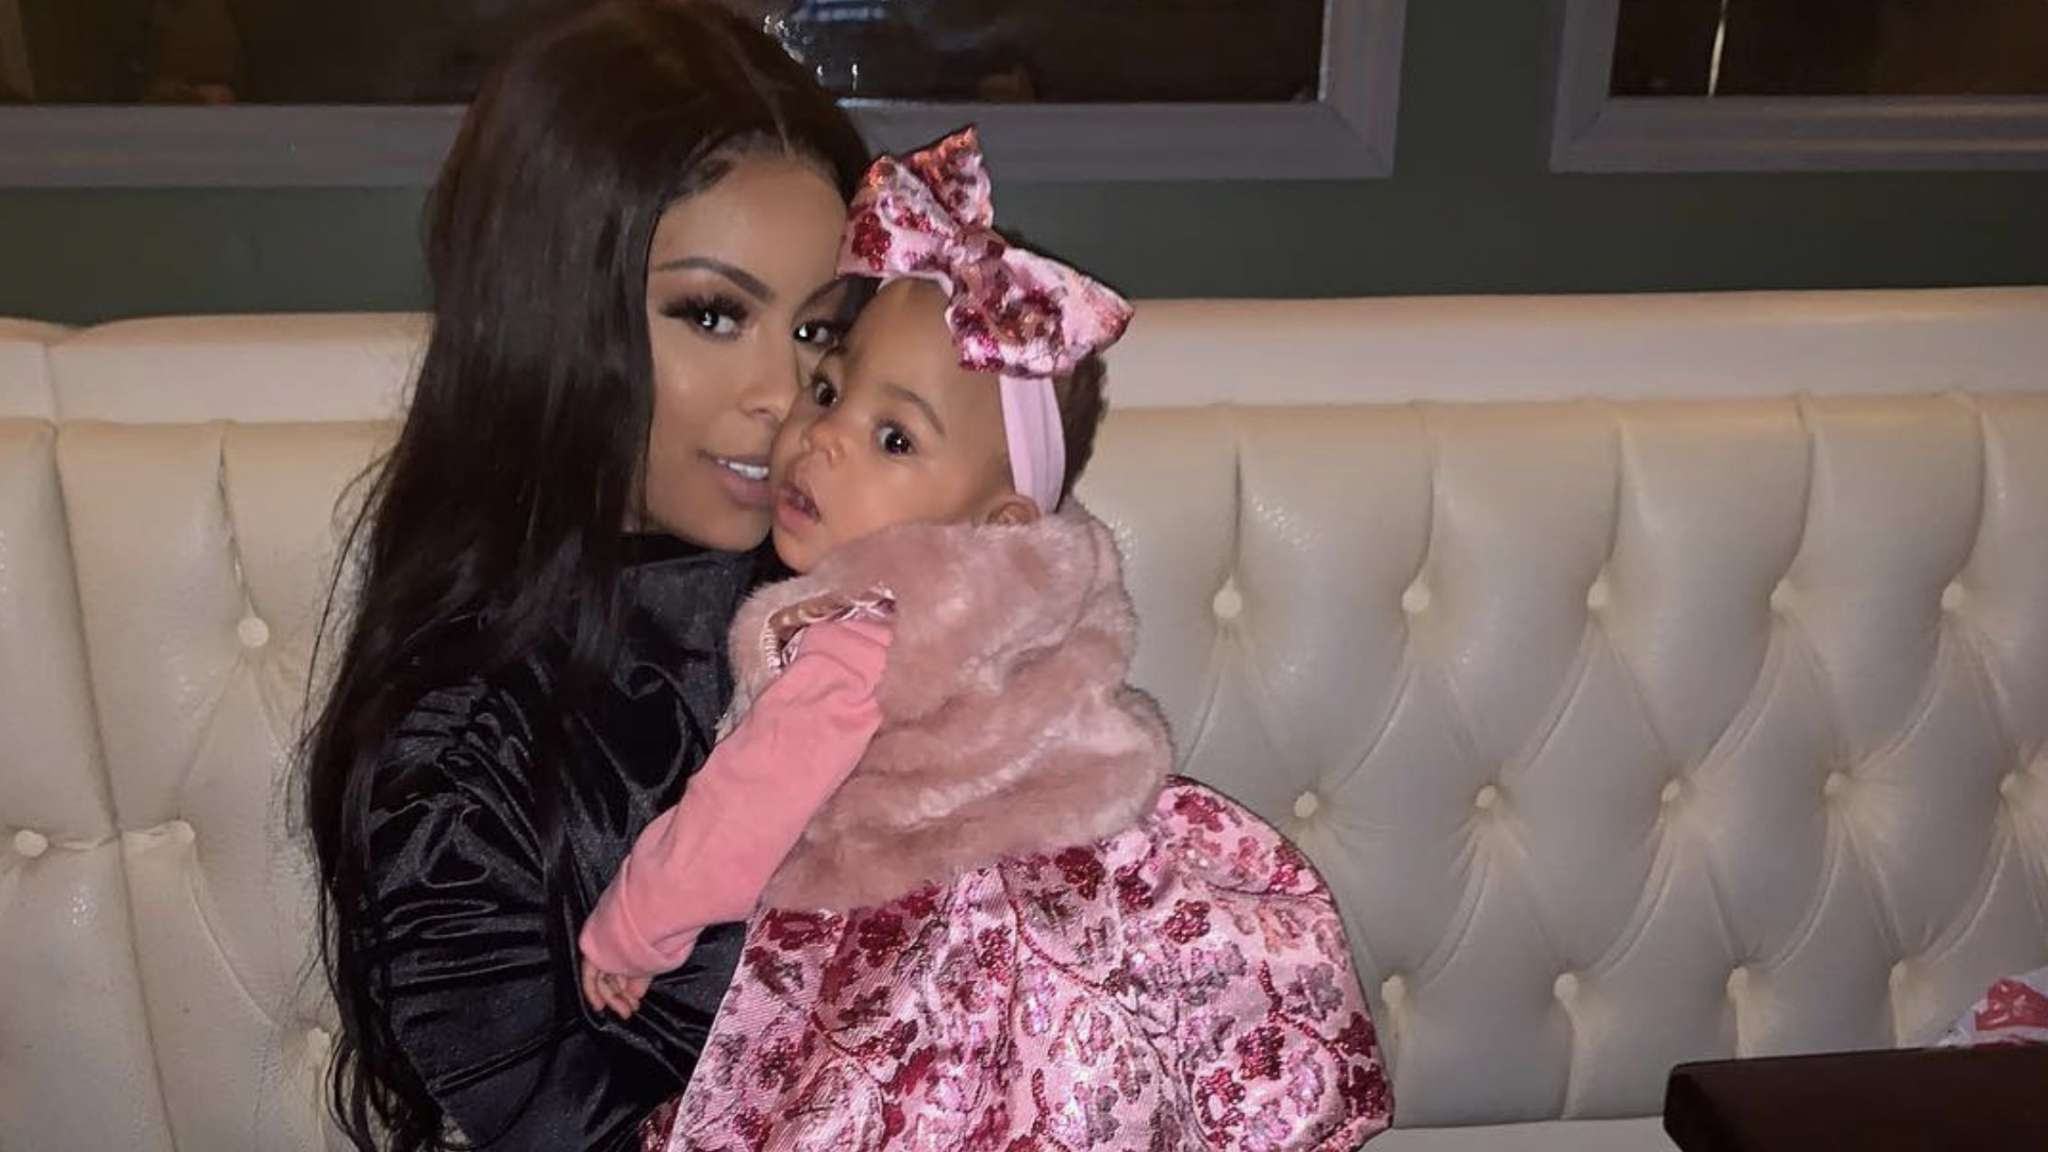 alexis-skyy-baby-girl-is-out-of-the-hospital-after-super-scary-brain-surgery